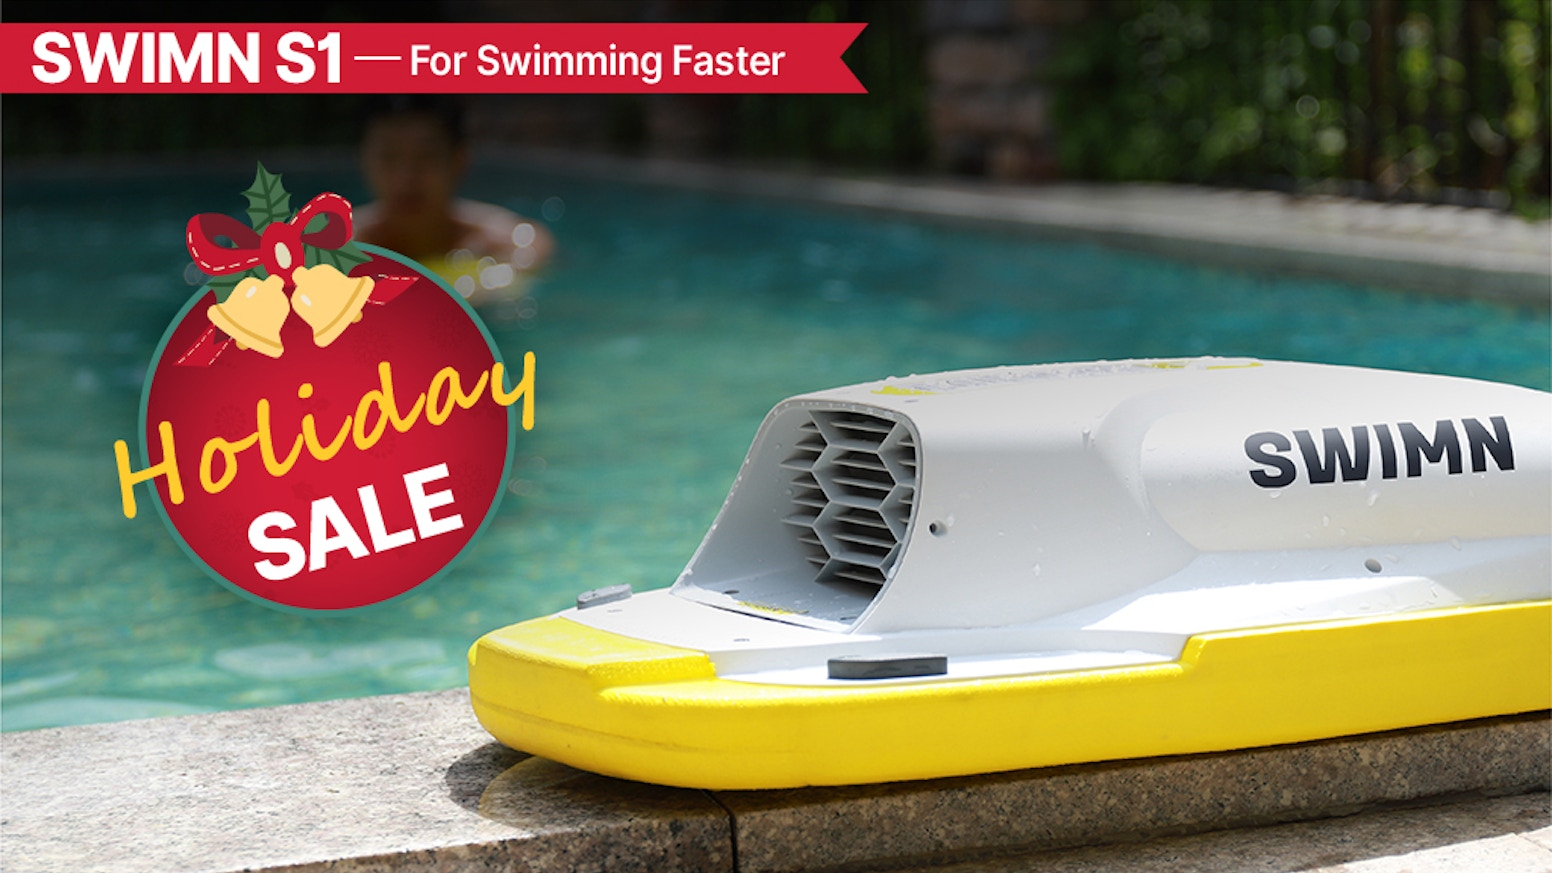 The amazing electric swimming kickboard that helps you swim fast, fun, and safely.